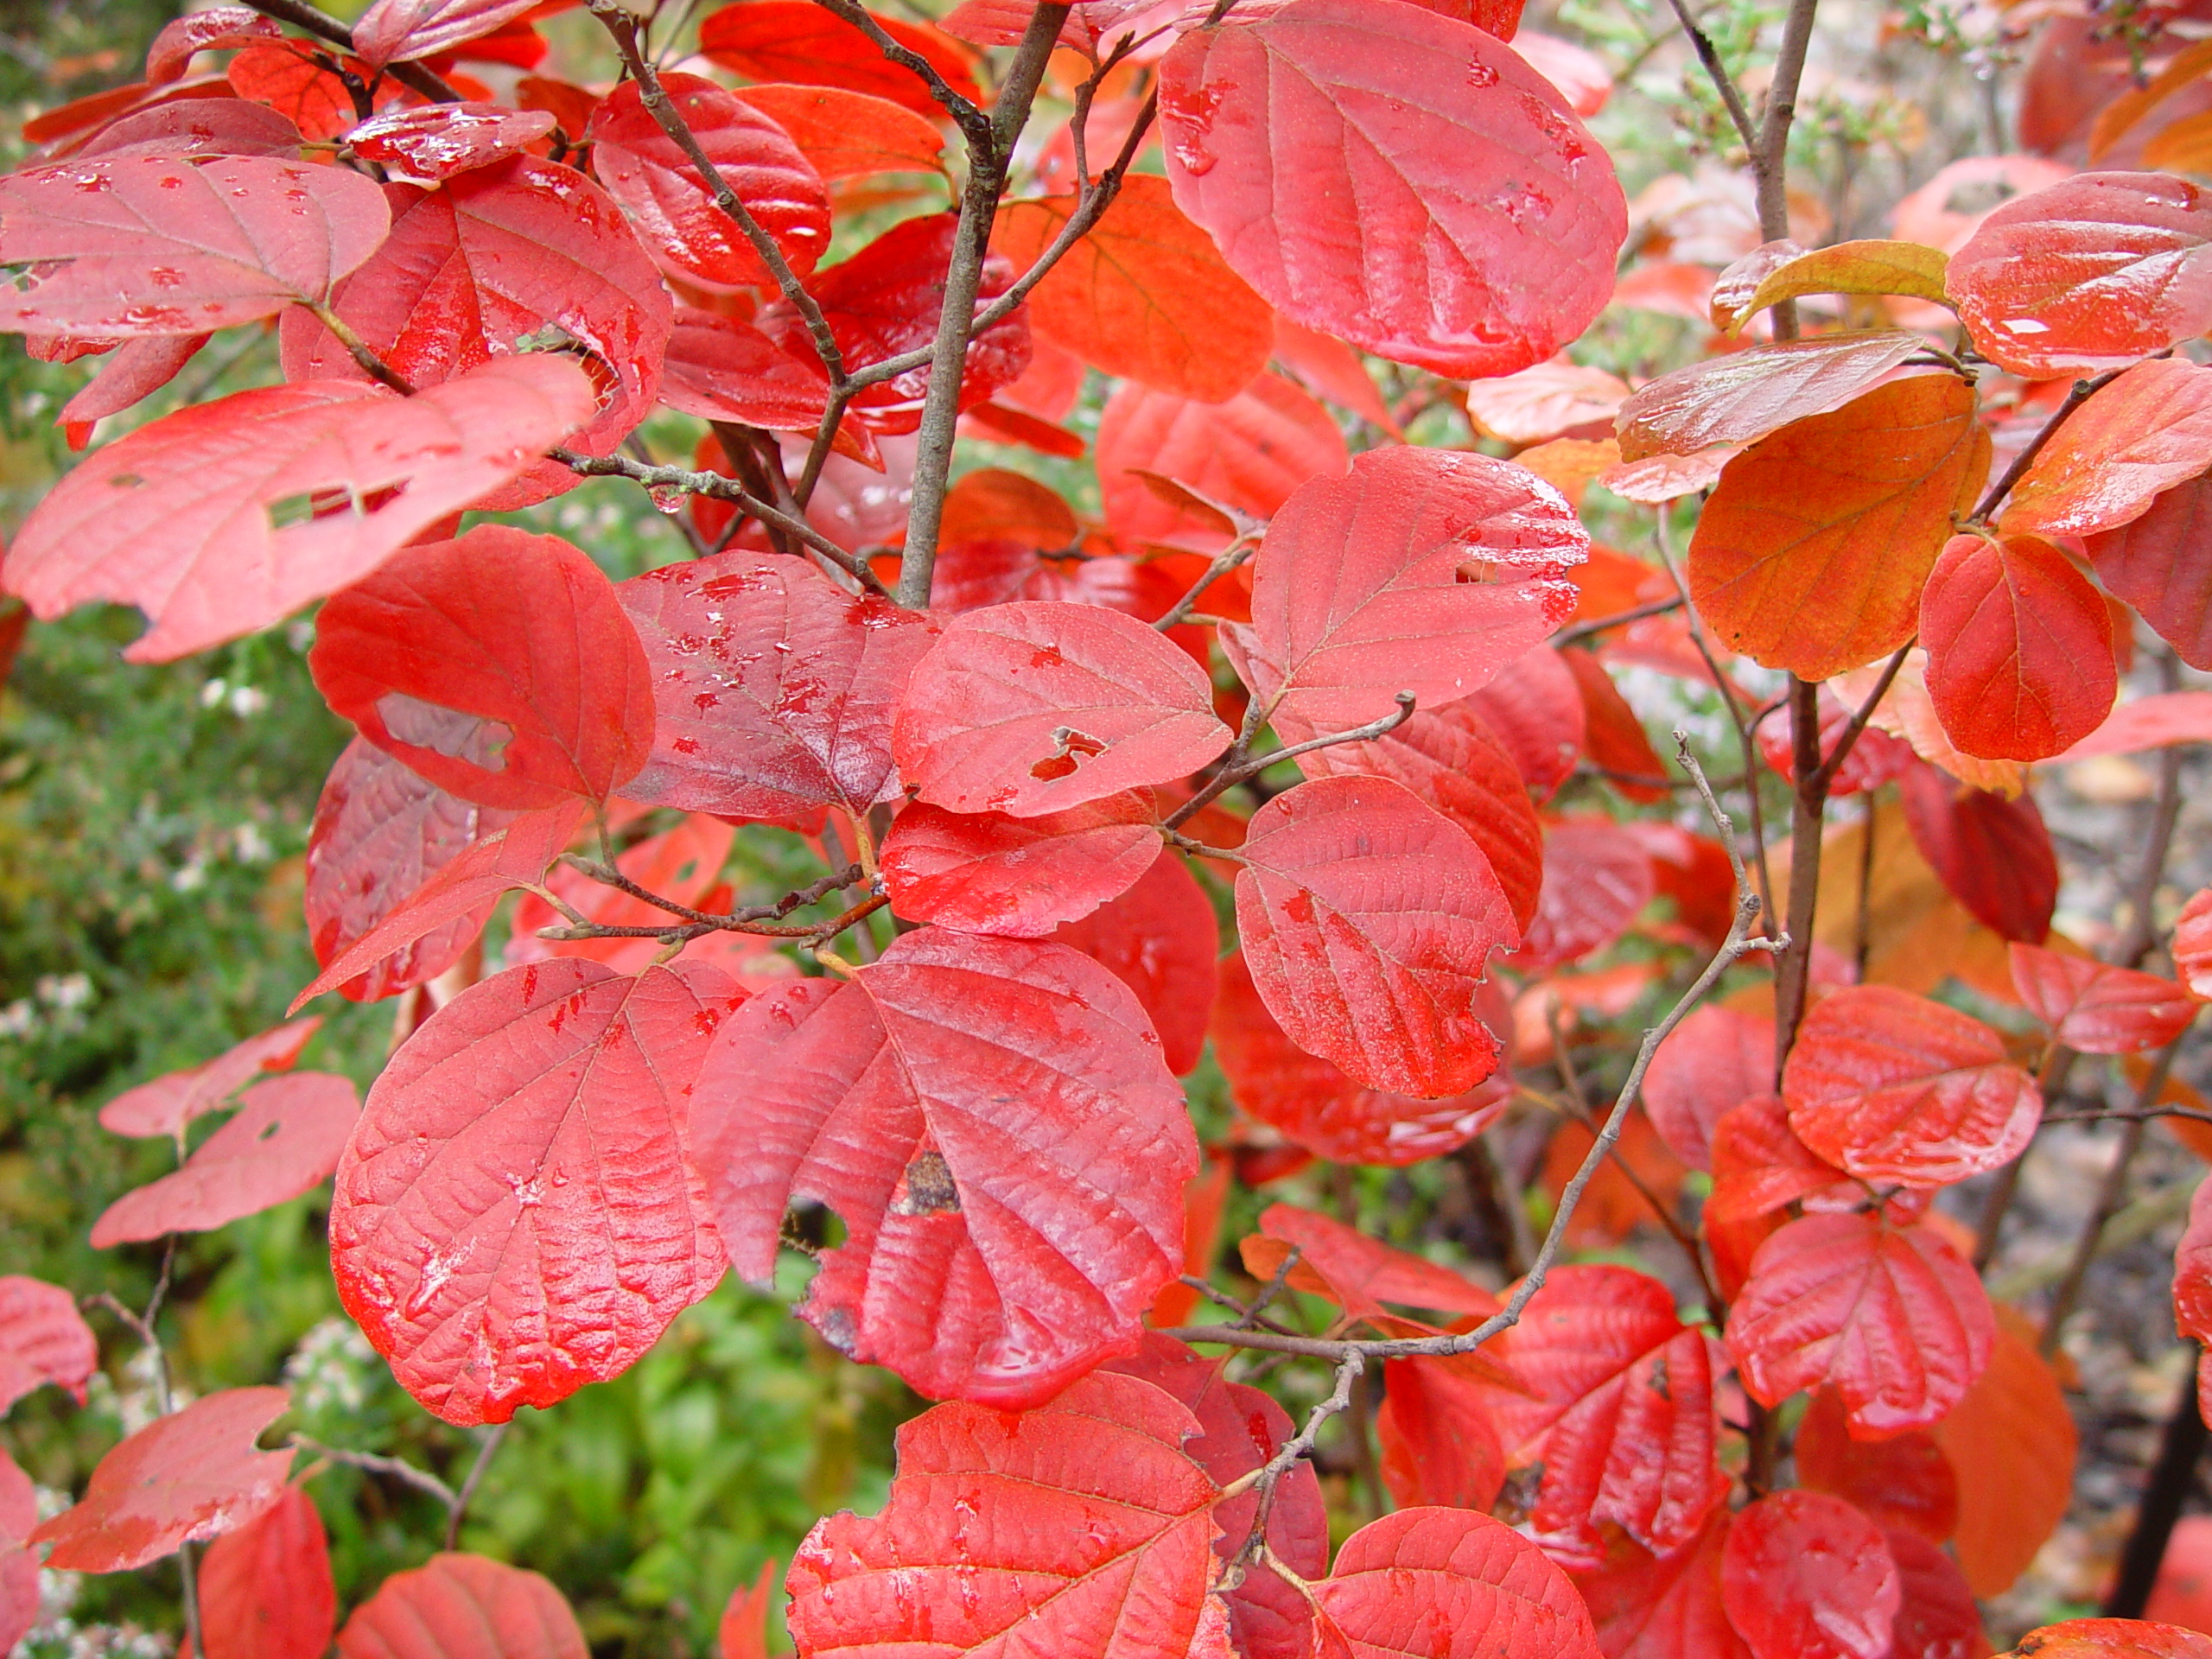 Fothergilla (both large and dwarf cultivars) provide a stunning show of autumn colors in the garden.